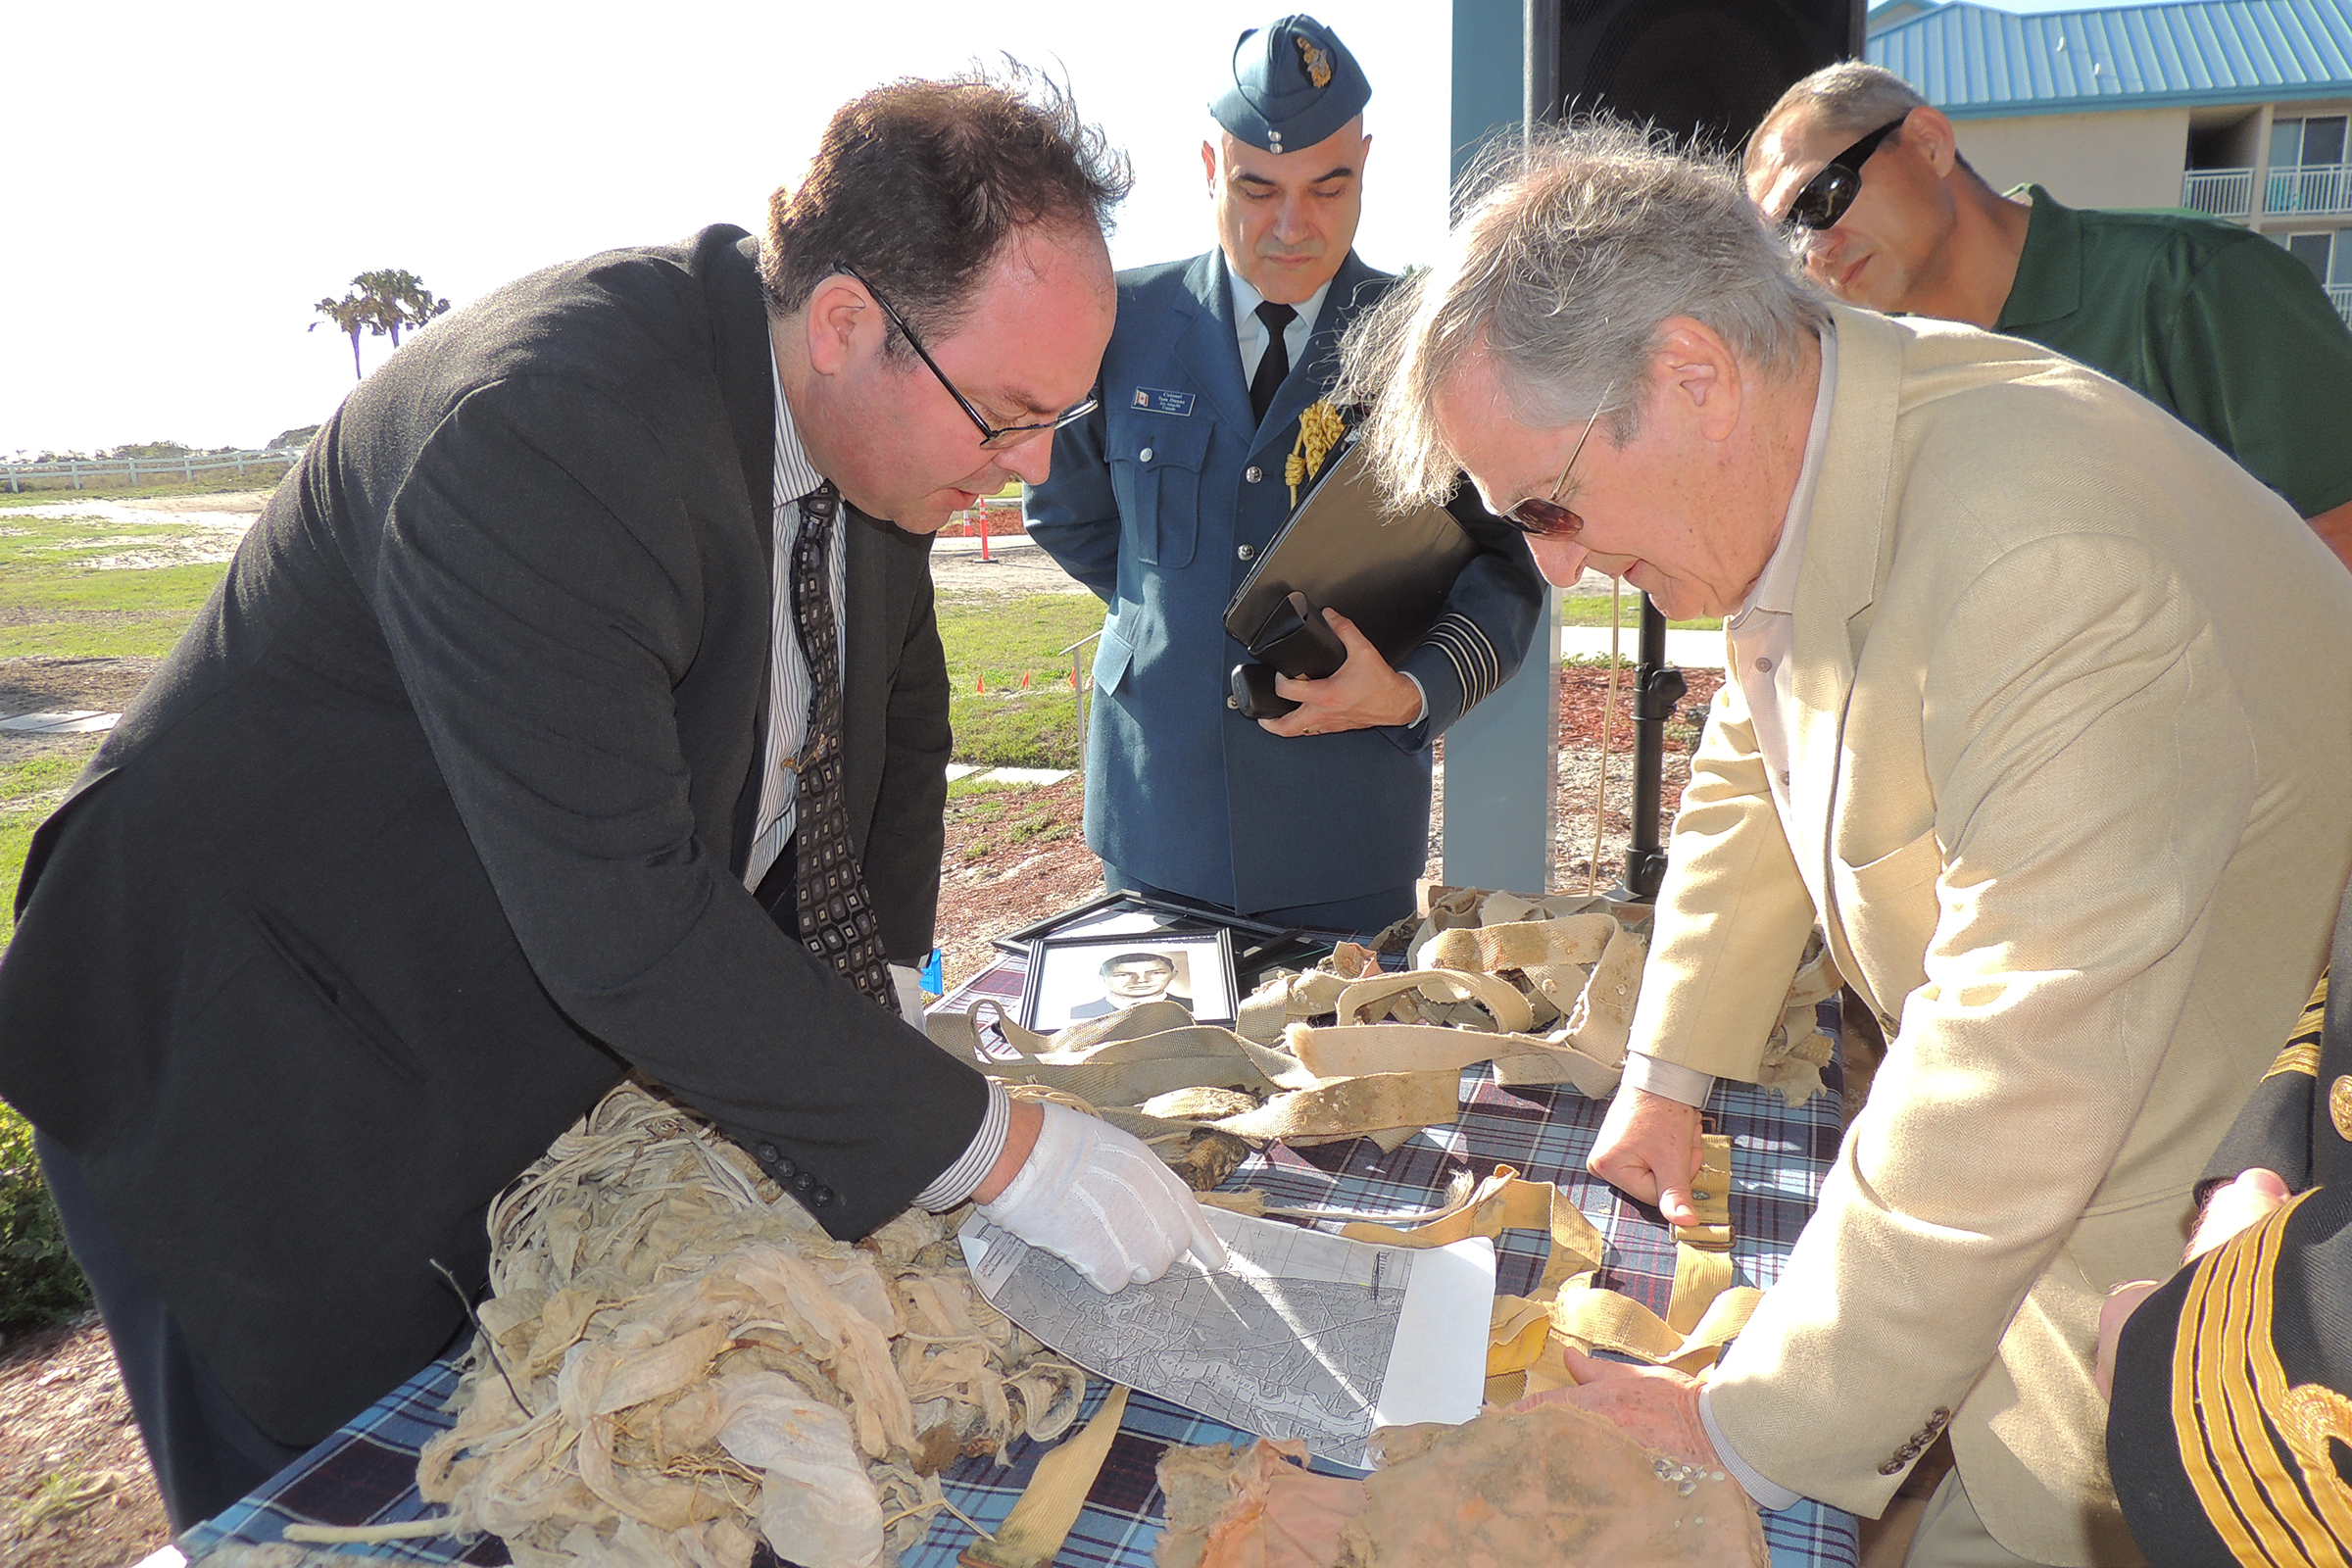 Dr Richard Mayne (left), the RCAF's senior historian, explains the flight path that Lieutenant Barry Troy was on when he disappeared off the coast of Florida on February 25, 1958, to Lieutenant Troy's brother, Dick Troy, who was only 21 when his brother vanished. On the table are the artifacts recovered on a Jacksonville beach, not far from the crash site, last autumn. Looking on are Colonel Tom Dunne (centre), Canadian air attaché at the Embassy of Canada in Washington, DC, and Zach Johnson, the Jacksonville park ranger who discovered the artifacts and realized their significance. PHOTO: Joanna Calder, RCAF public affairs